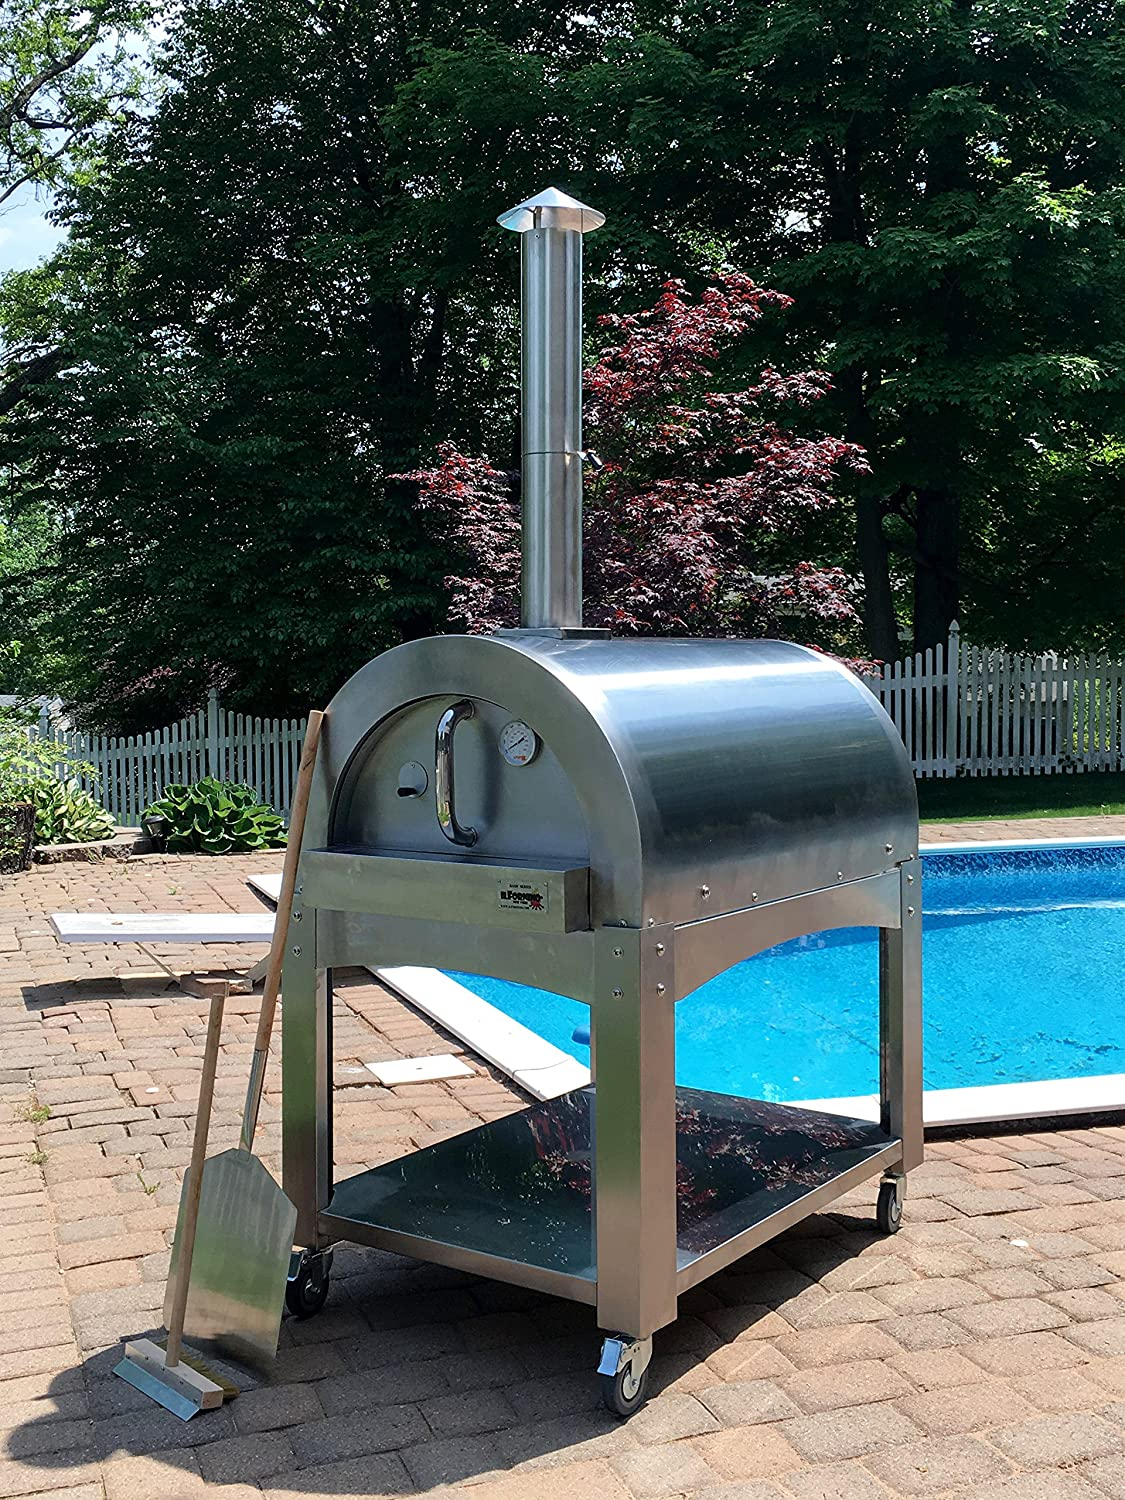 Amazon.com: IlFornino Basic Wood Fired Pizza Oven  High Grade Stainless  Steel By IlFornino, New York: Patio, Lawn U0026 Garden